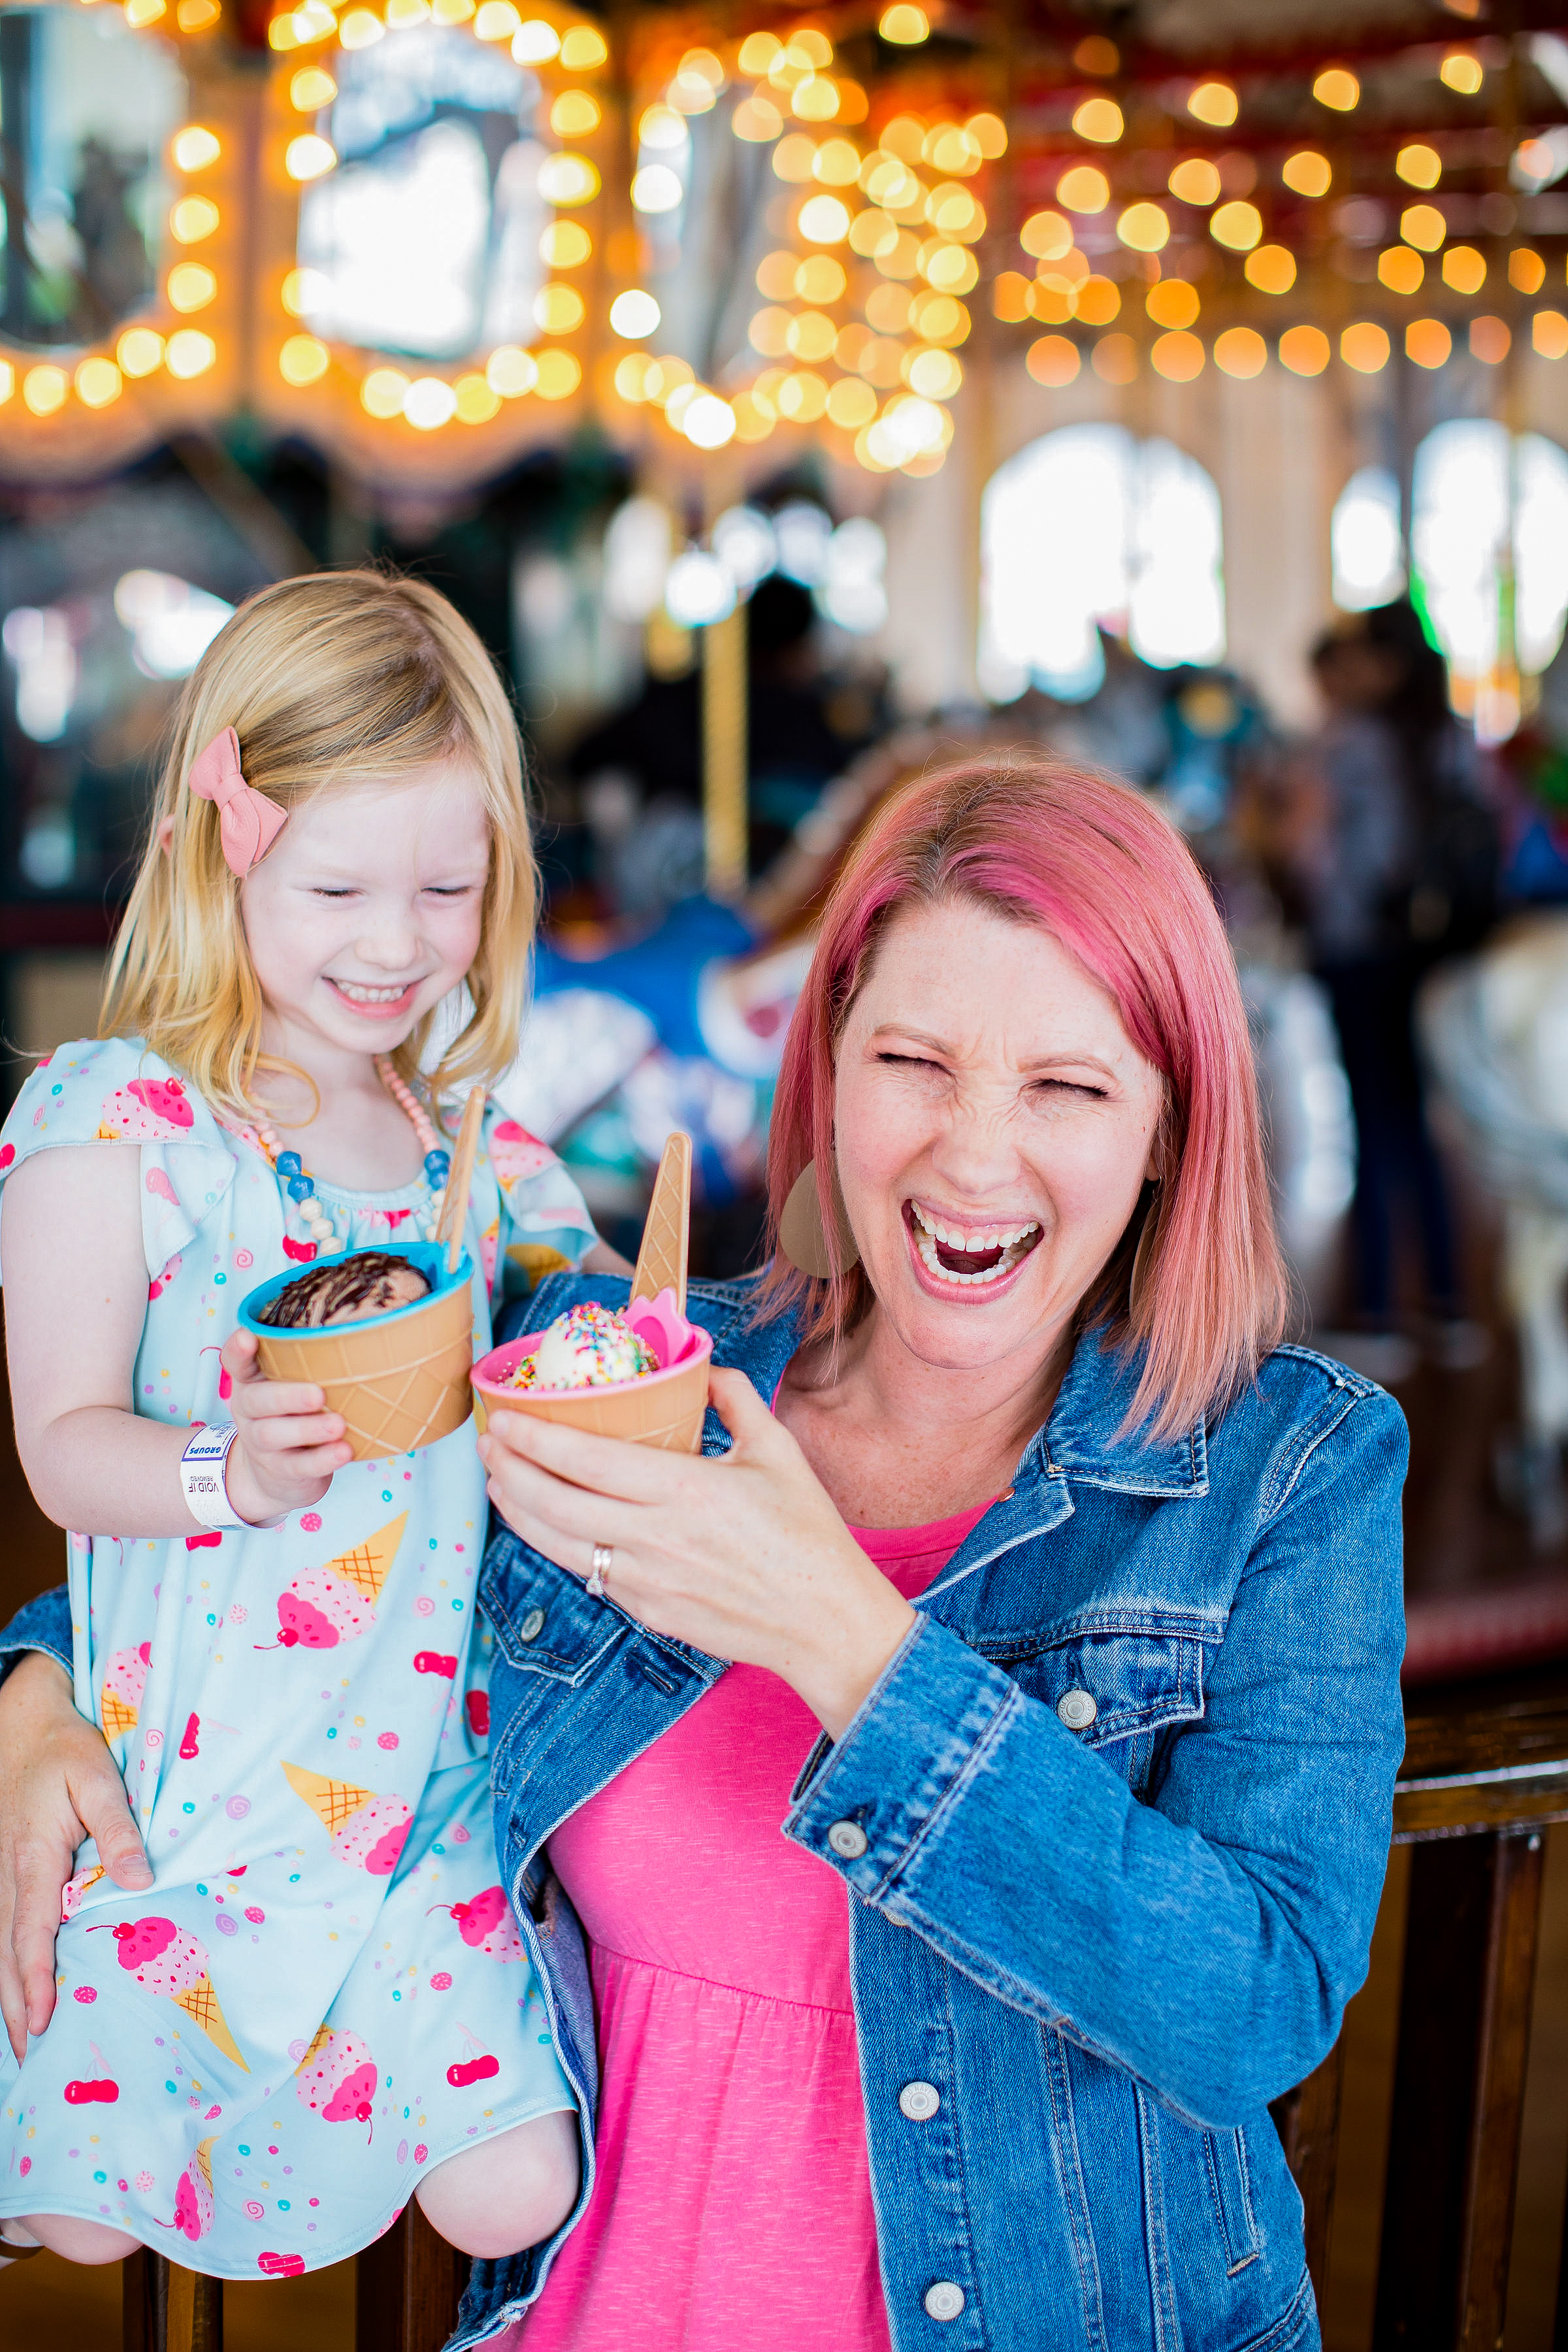 Summer Ice Cream Social: Want to host a fun summer party? Here's how to do it for a steal!